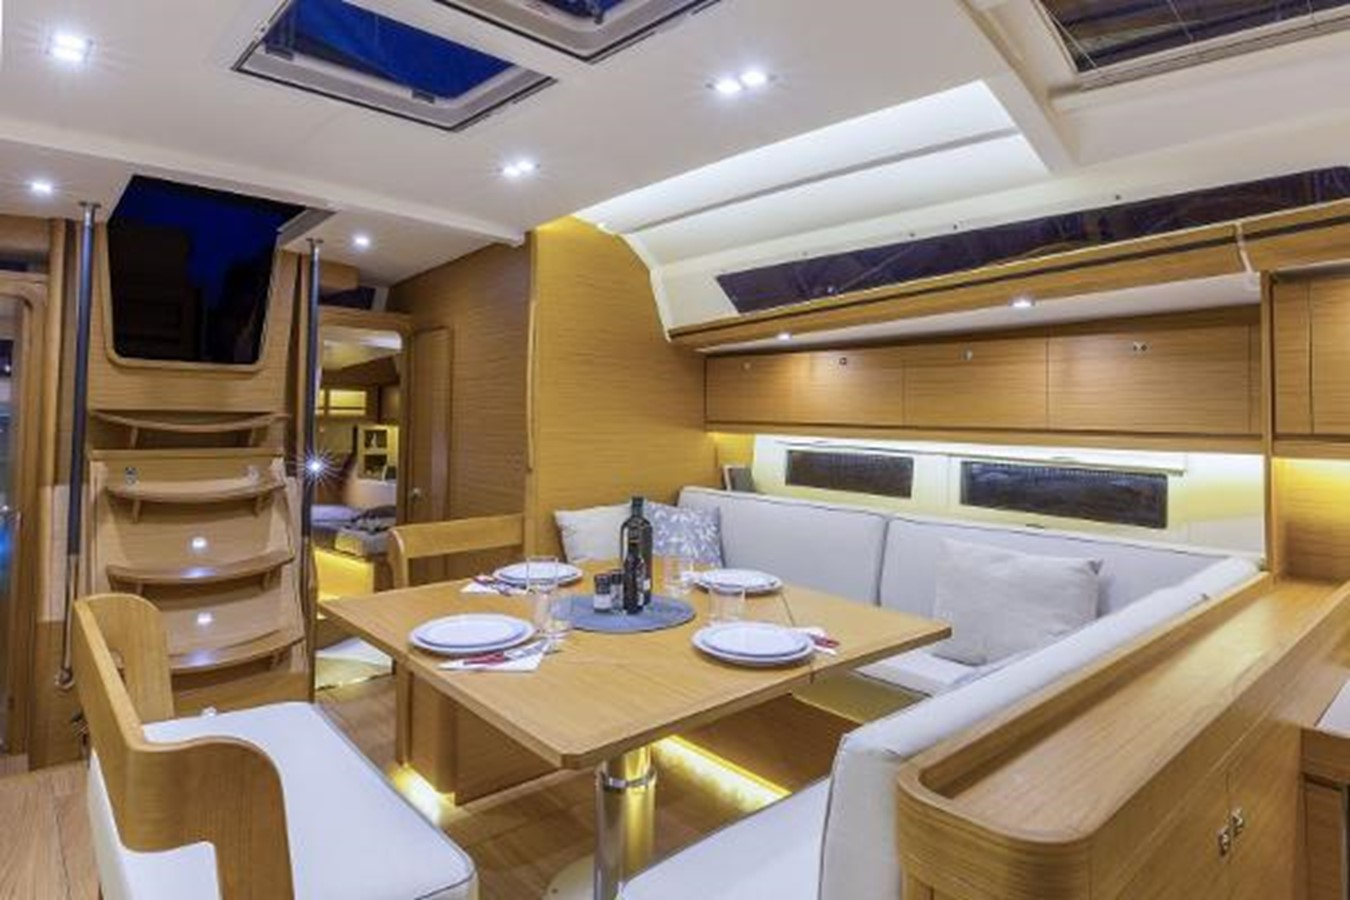 Manufacturer Provided Image: Dufour 520 Grand Large 2019 DUFOUR 520 Grand Large Classic Yacht 2179777